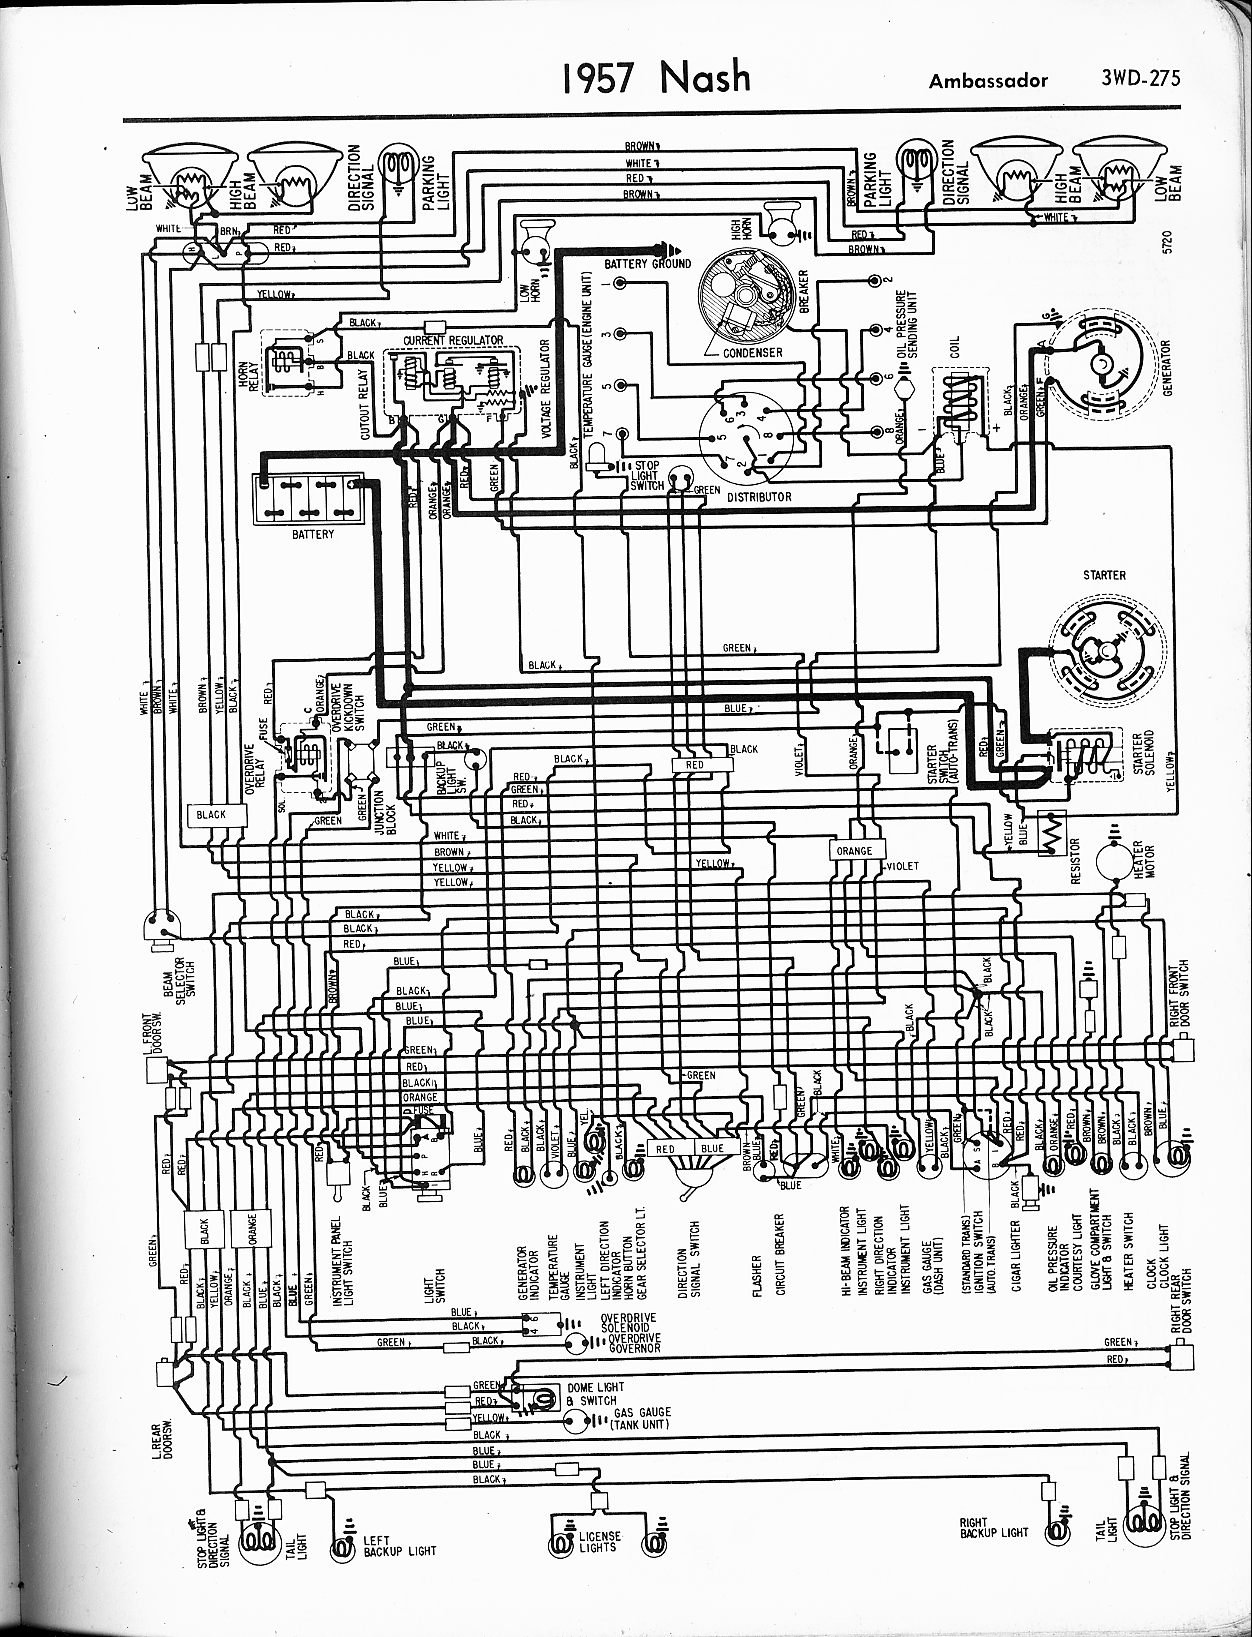 MWire5765 275 nash wiring diagrams the old car manual project old car manual project wiring diagrams at soozxer.org